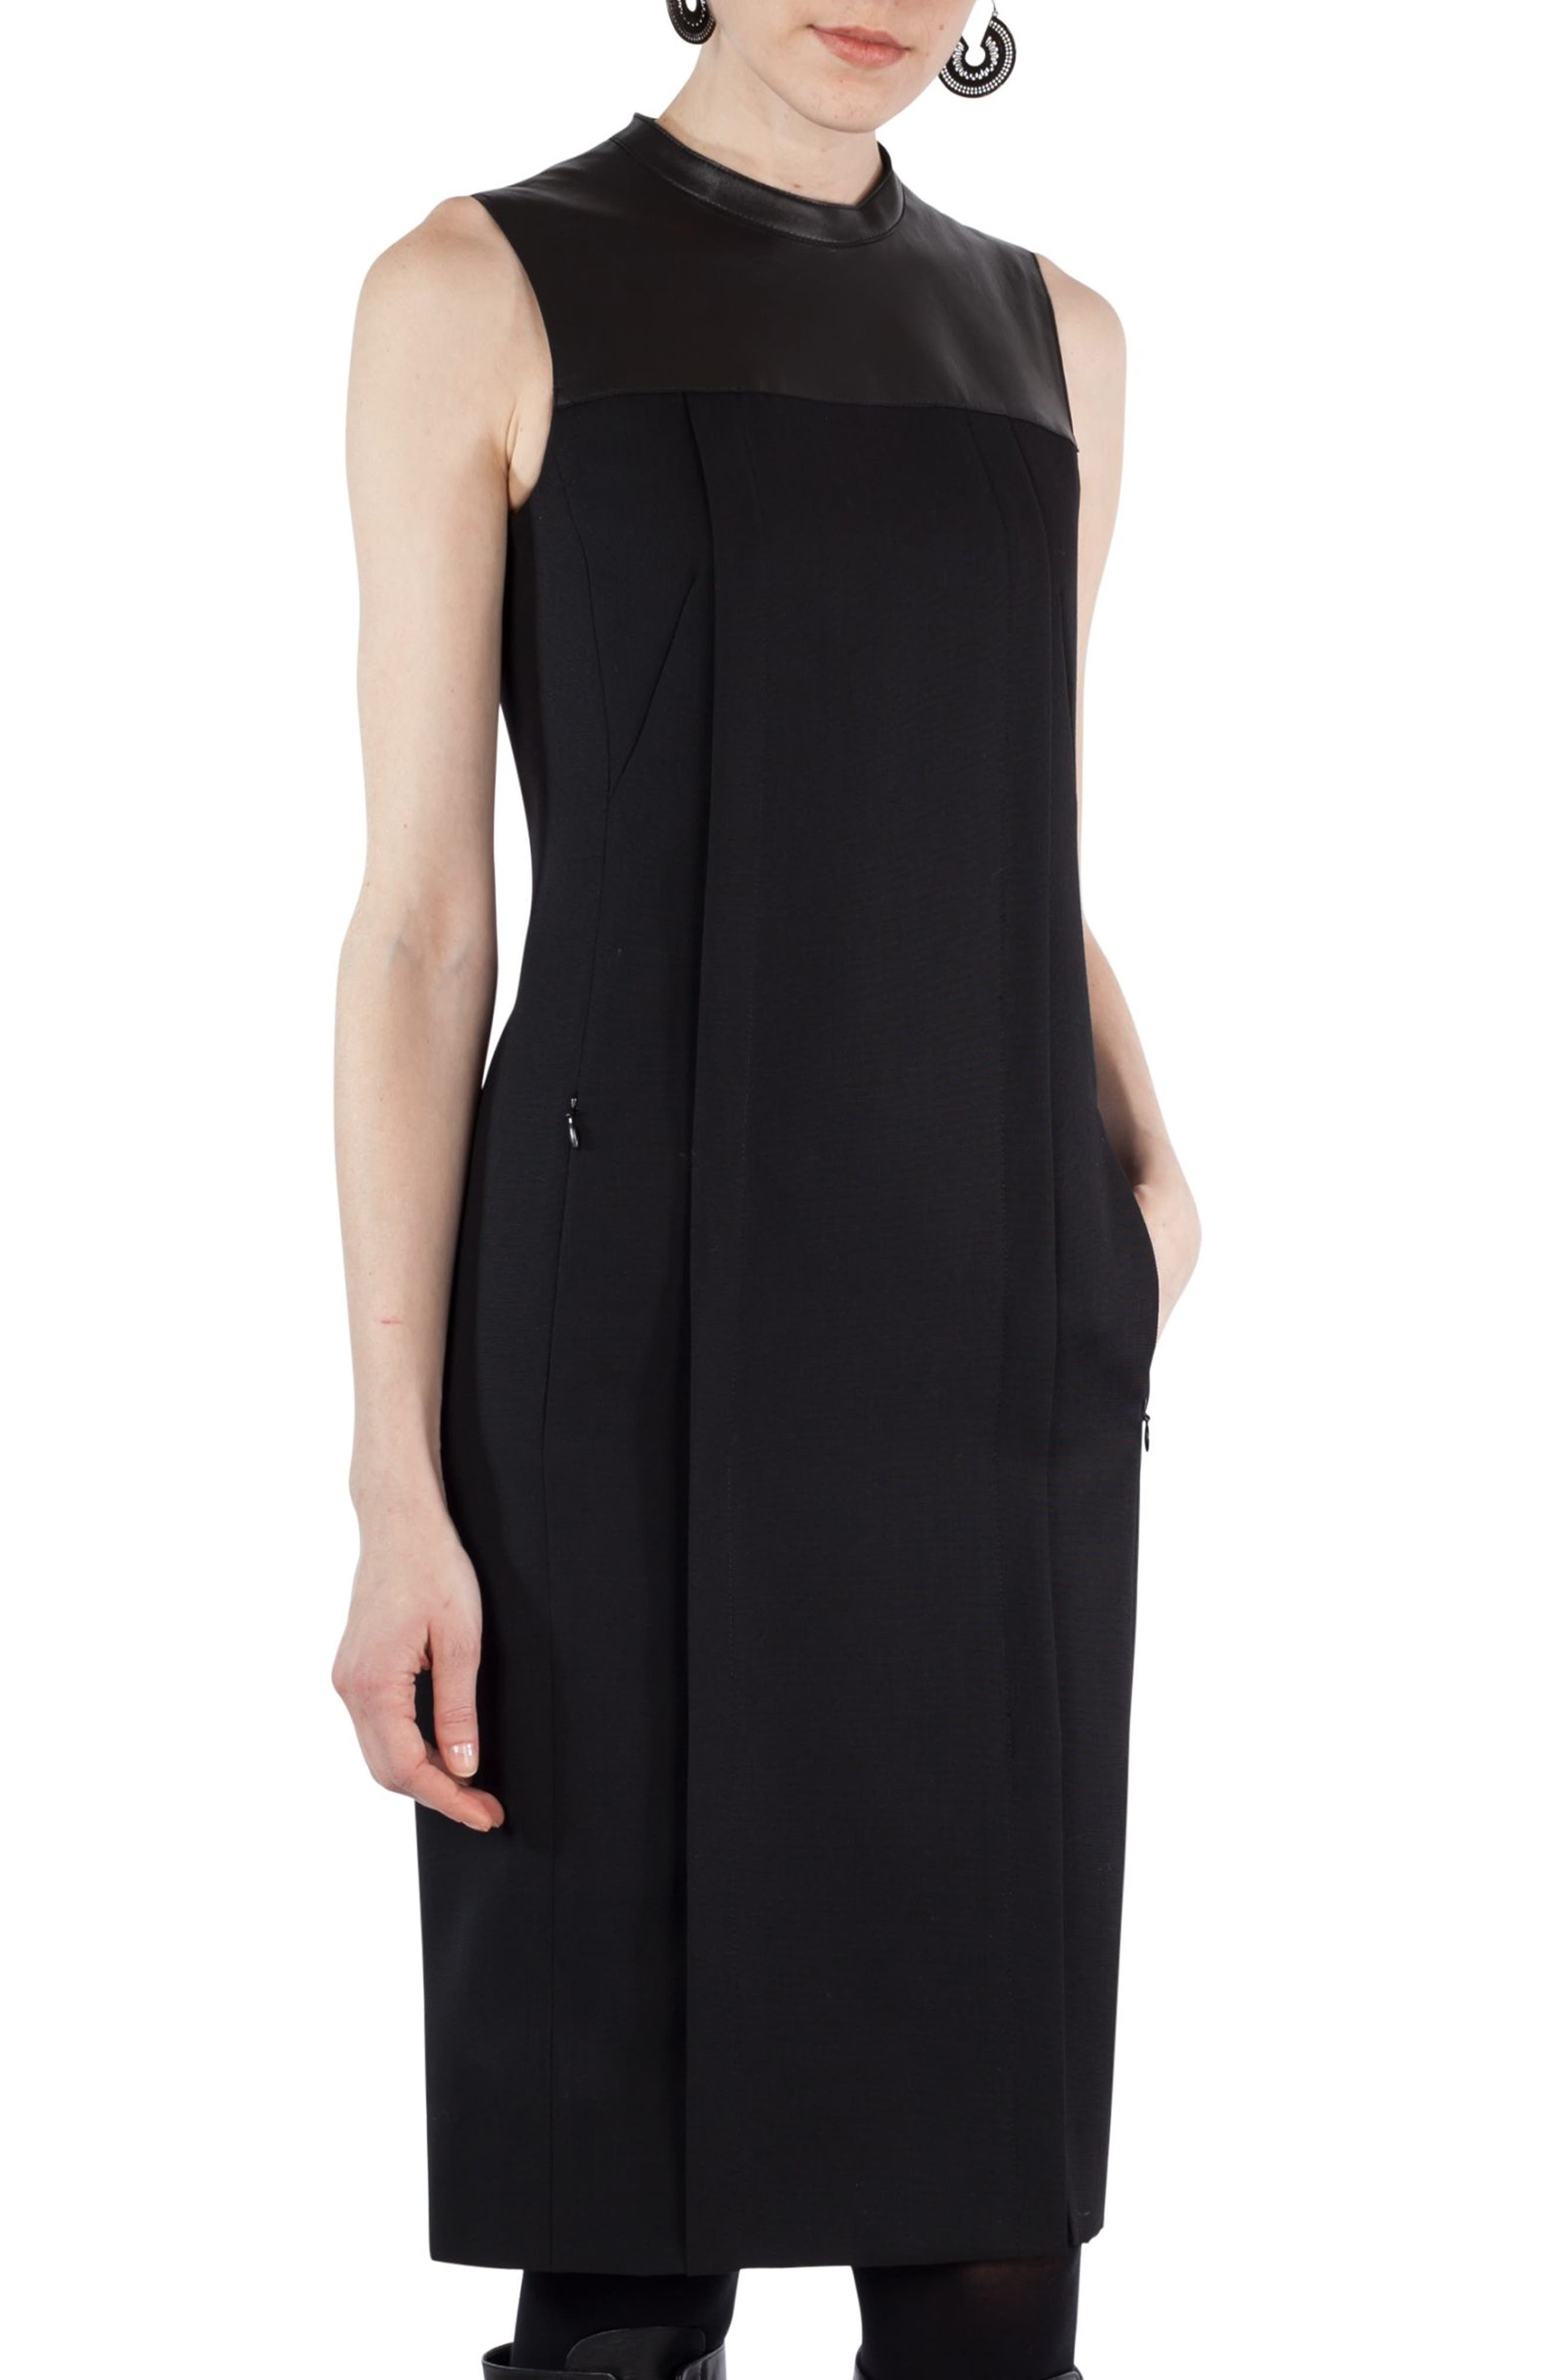 AKRIS PUNTO Wool & Leather Shift Dress, Main, color, 009